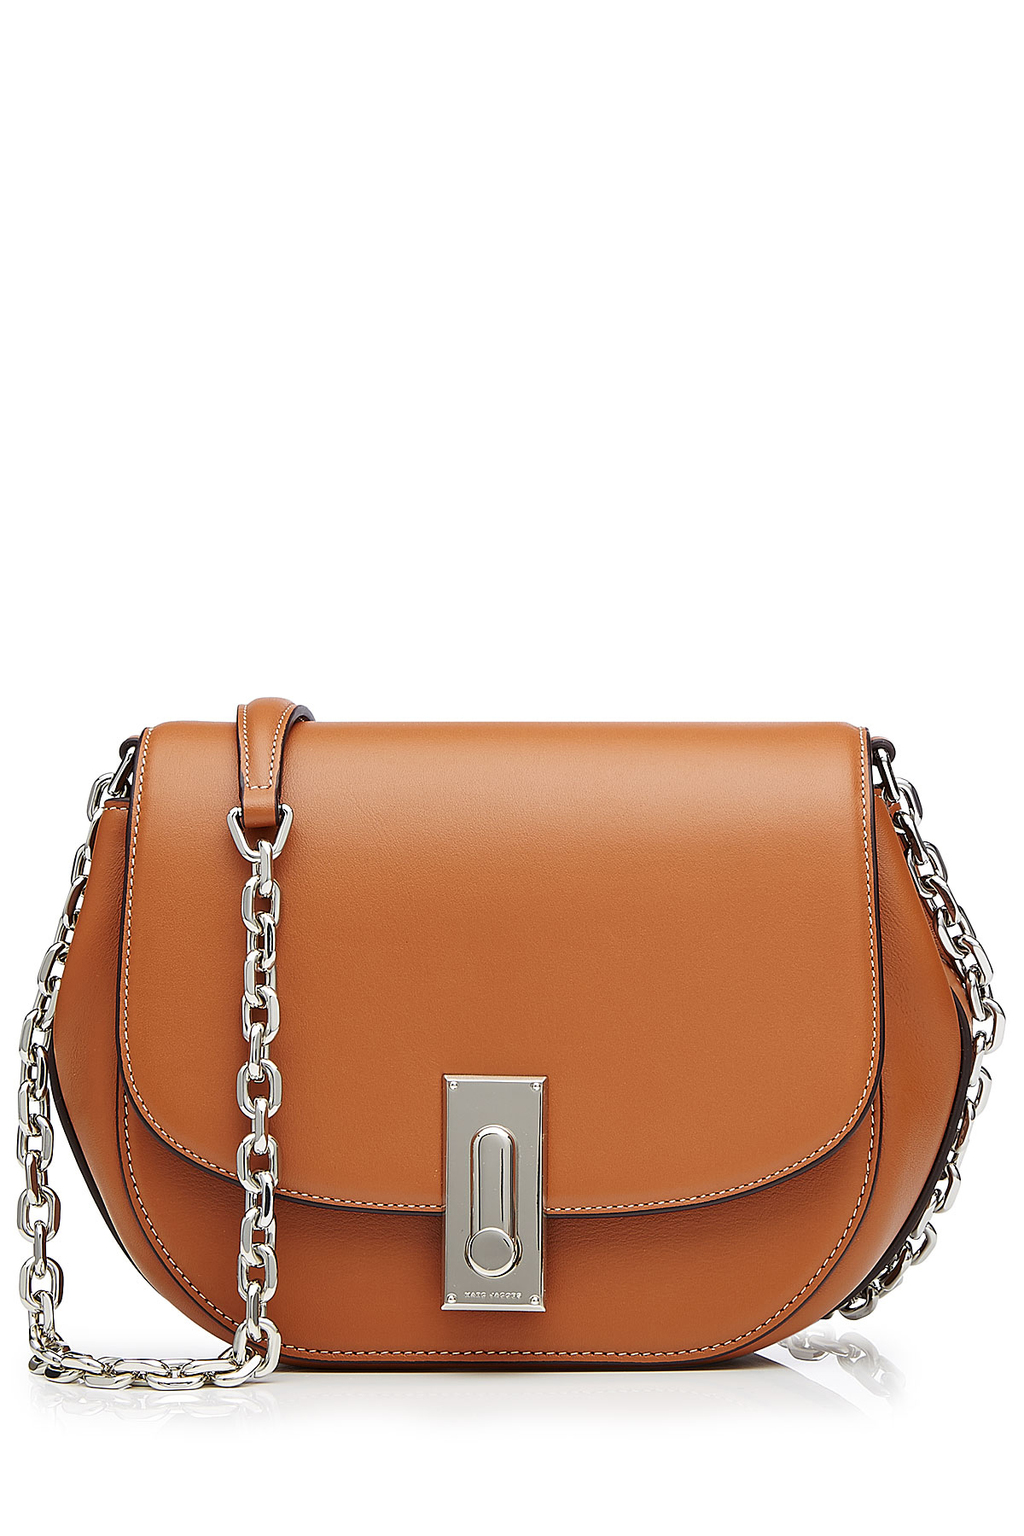 West End Leather Saddle Bag Brown - predominant colour: tan; secondary colour: silver; occasions: casual, creative work; type of pattern: standard; style: saddle; length: across body/long; size: standard; material: leather; pattern: plain; finish: plain; embellishment: chain/metal; season: s/s 2016; wardrobe: highlight